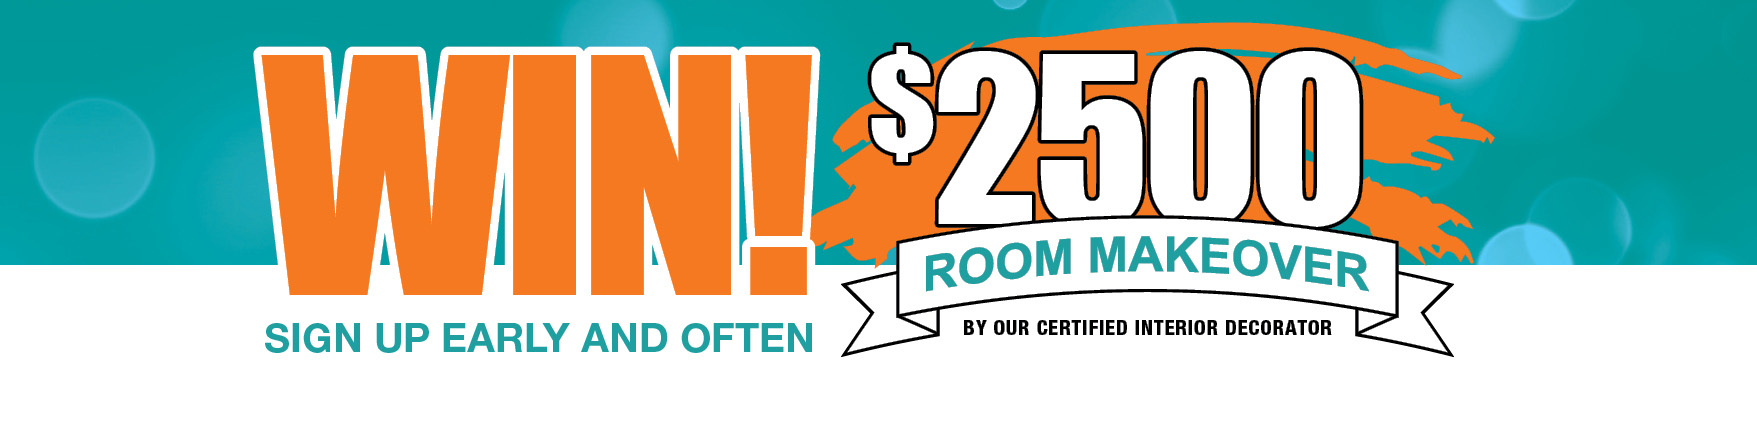 win $2500 Room makeover by our certified interior decorators